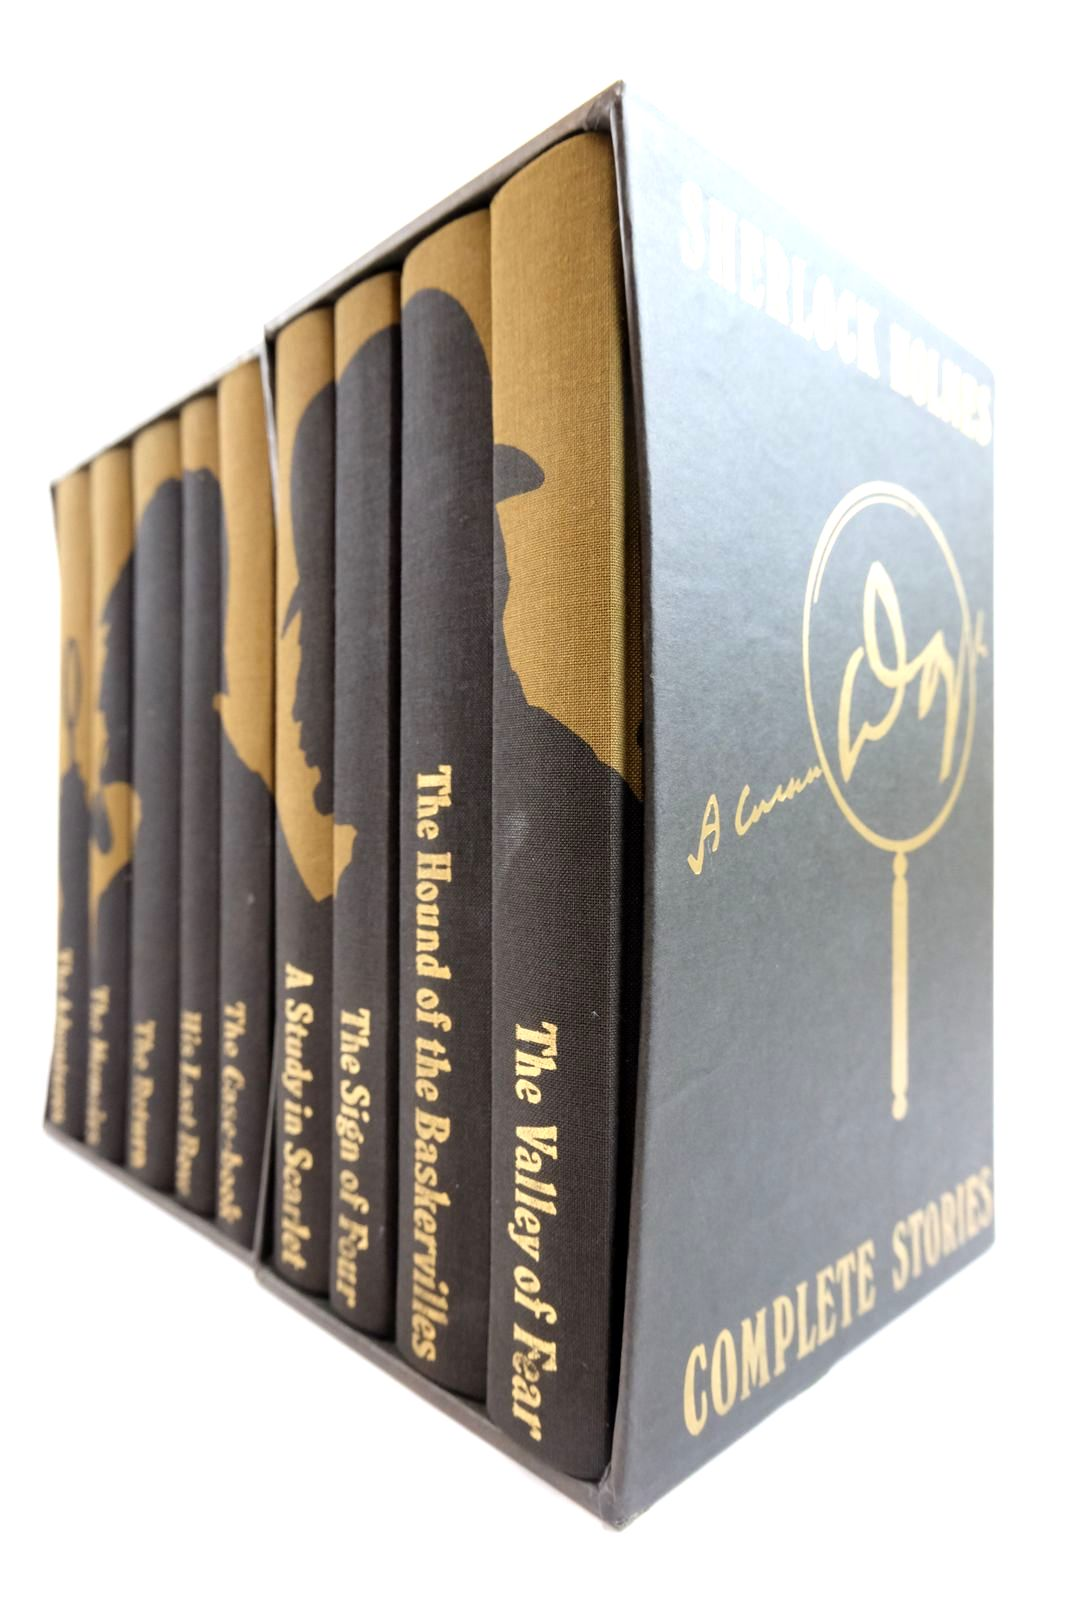 Photo of SHERLOCK HOLMES COMPLETE STORIES (9 VOLUMES)